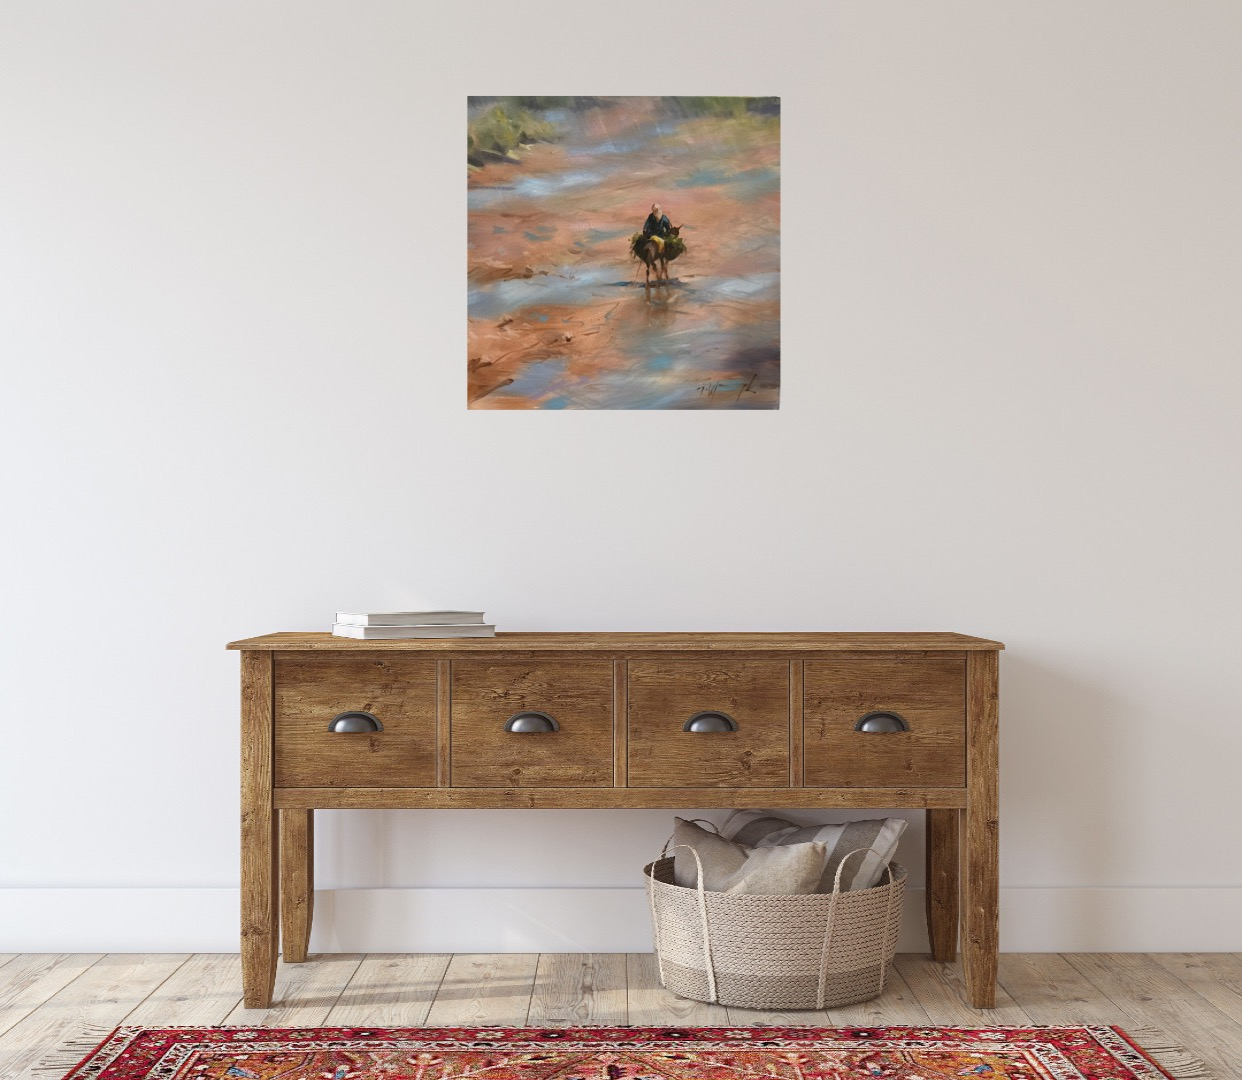 Buy art by Trevor Waugh for sale online. This Moroccan painting is a great example of Trevor Waugh's work.